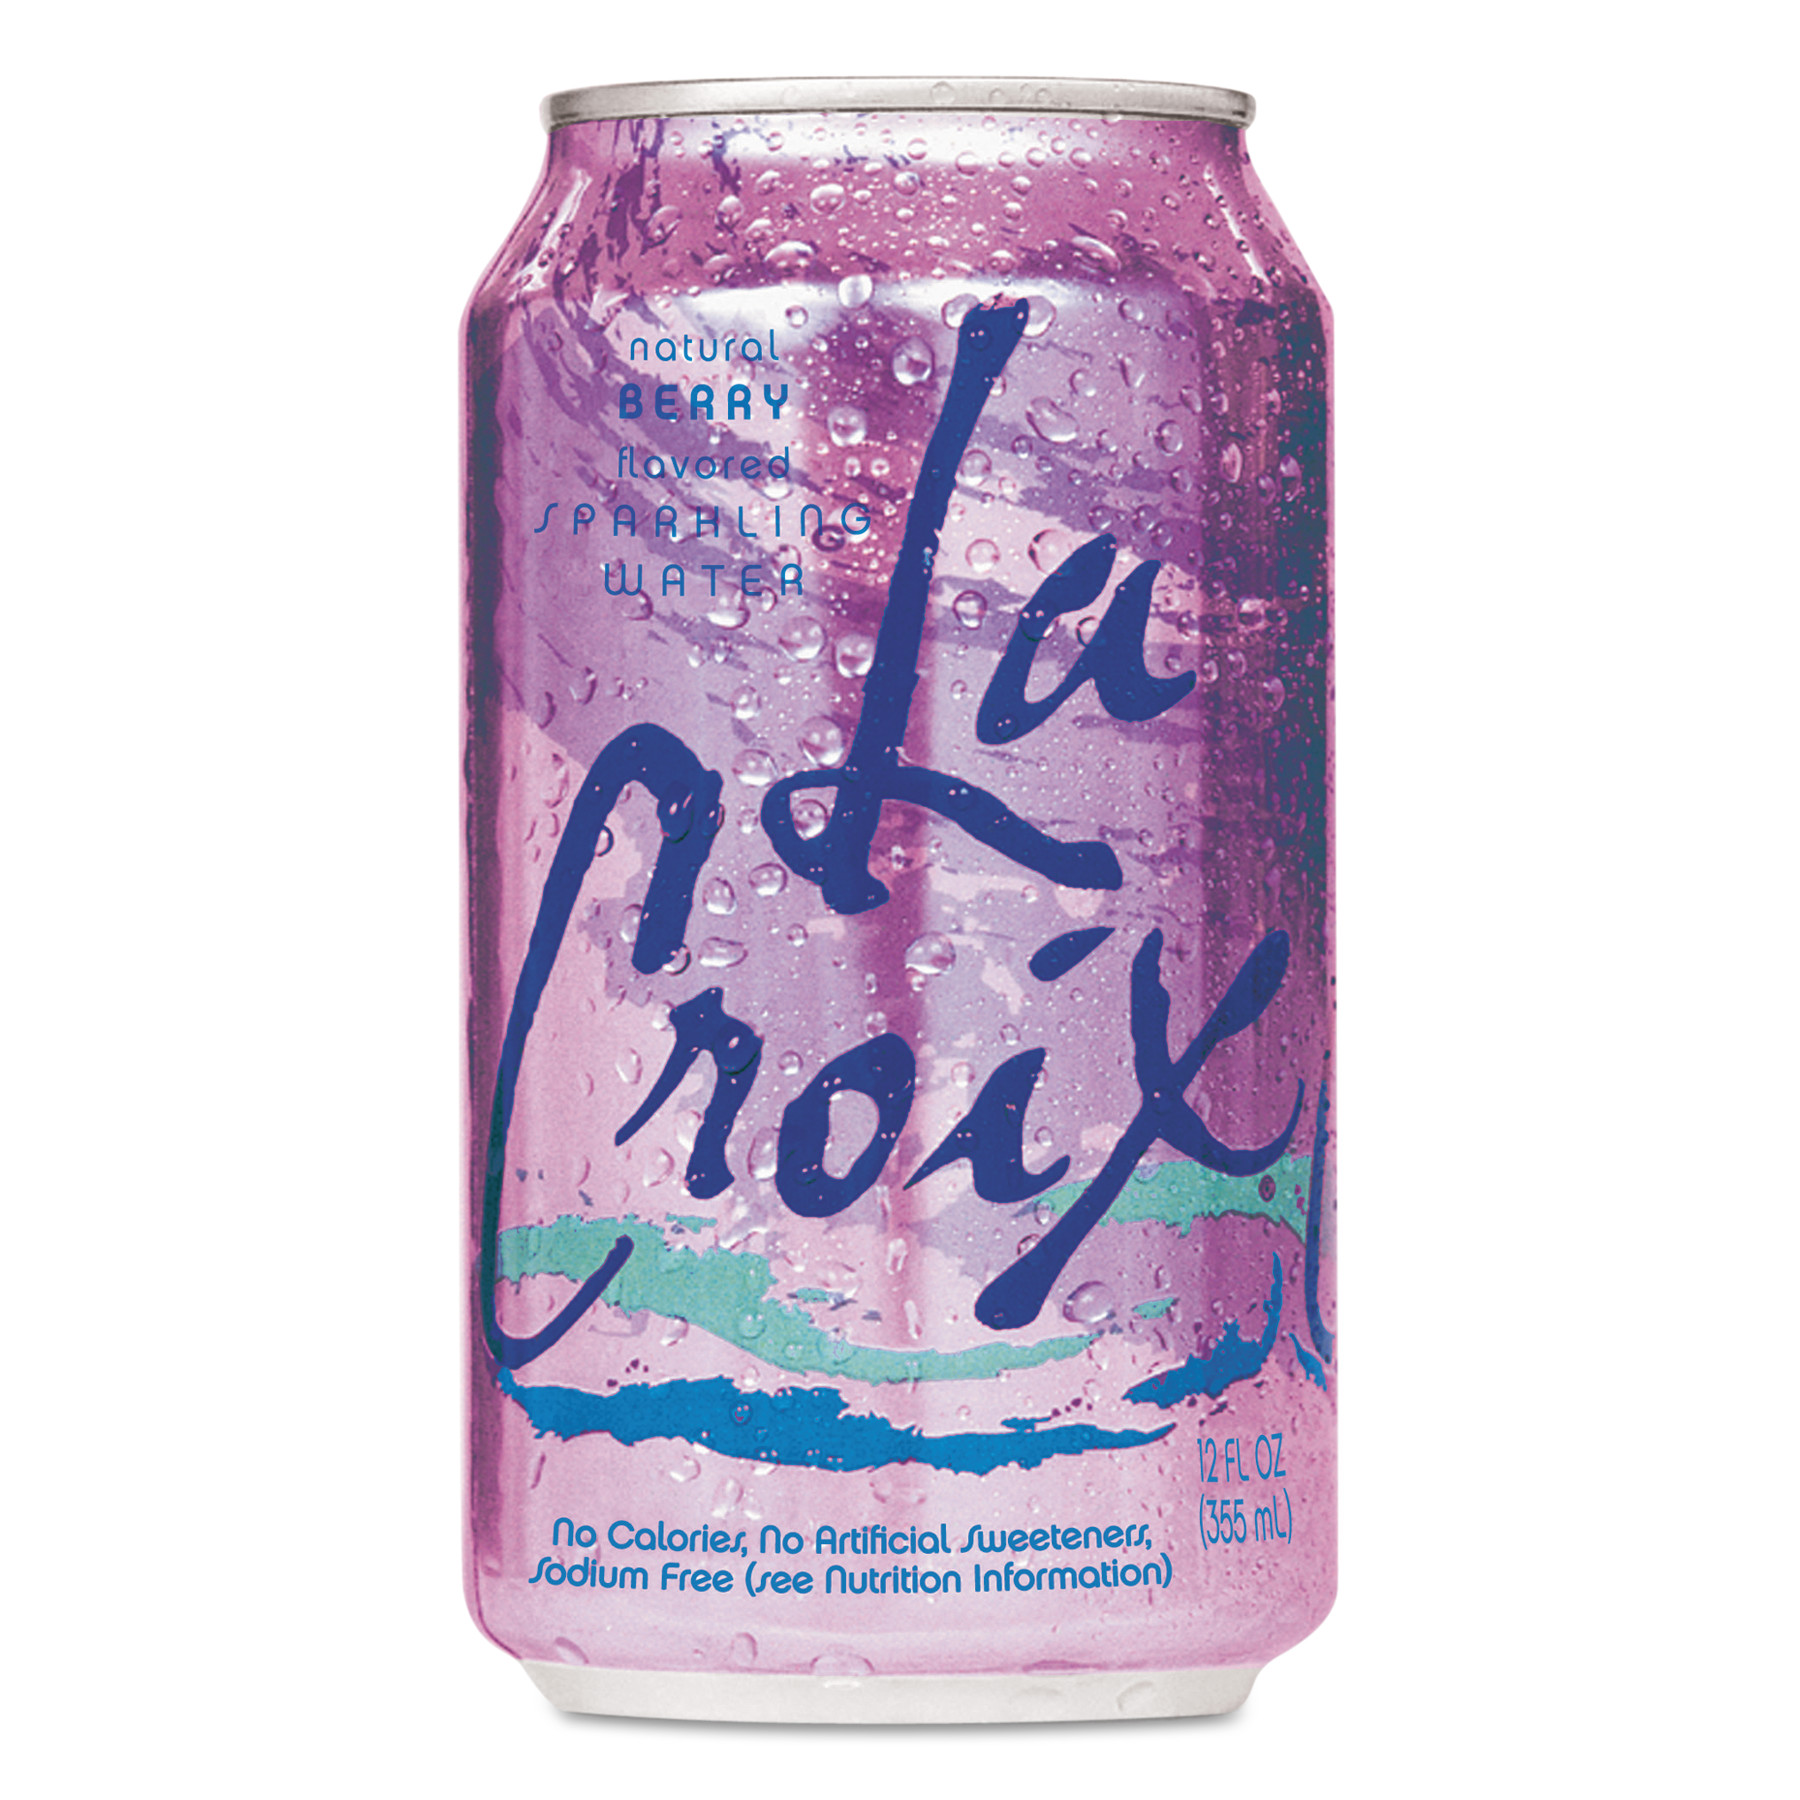 LaCroix Berry Sparkling Water, 12 fl oz, 24 pack by NATIONAL BEVERAGE CORP.